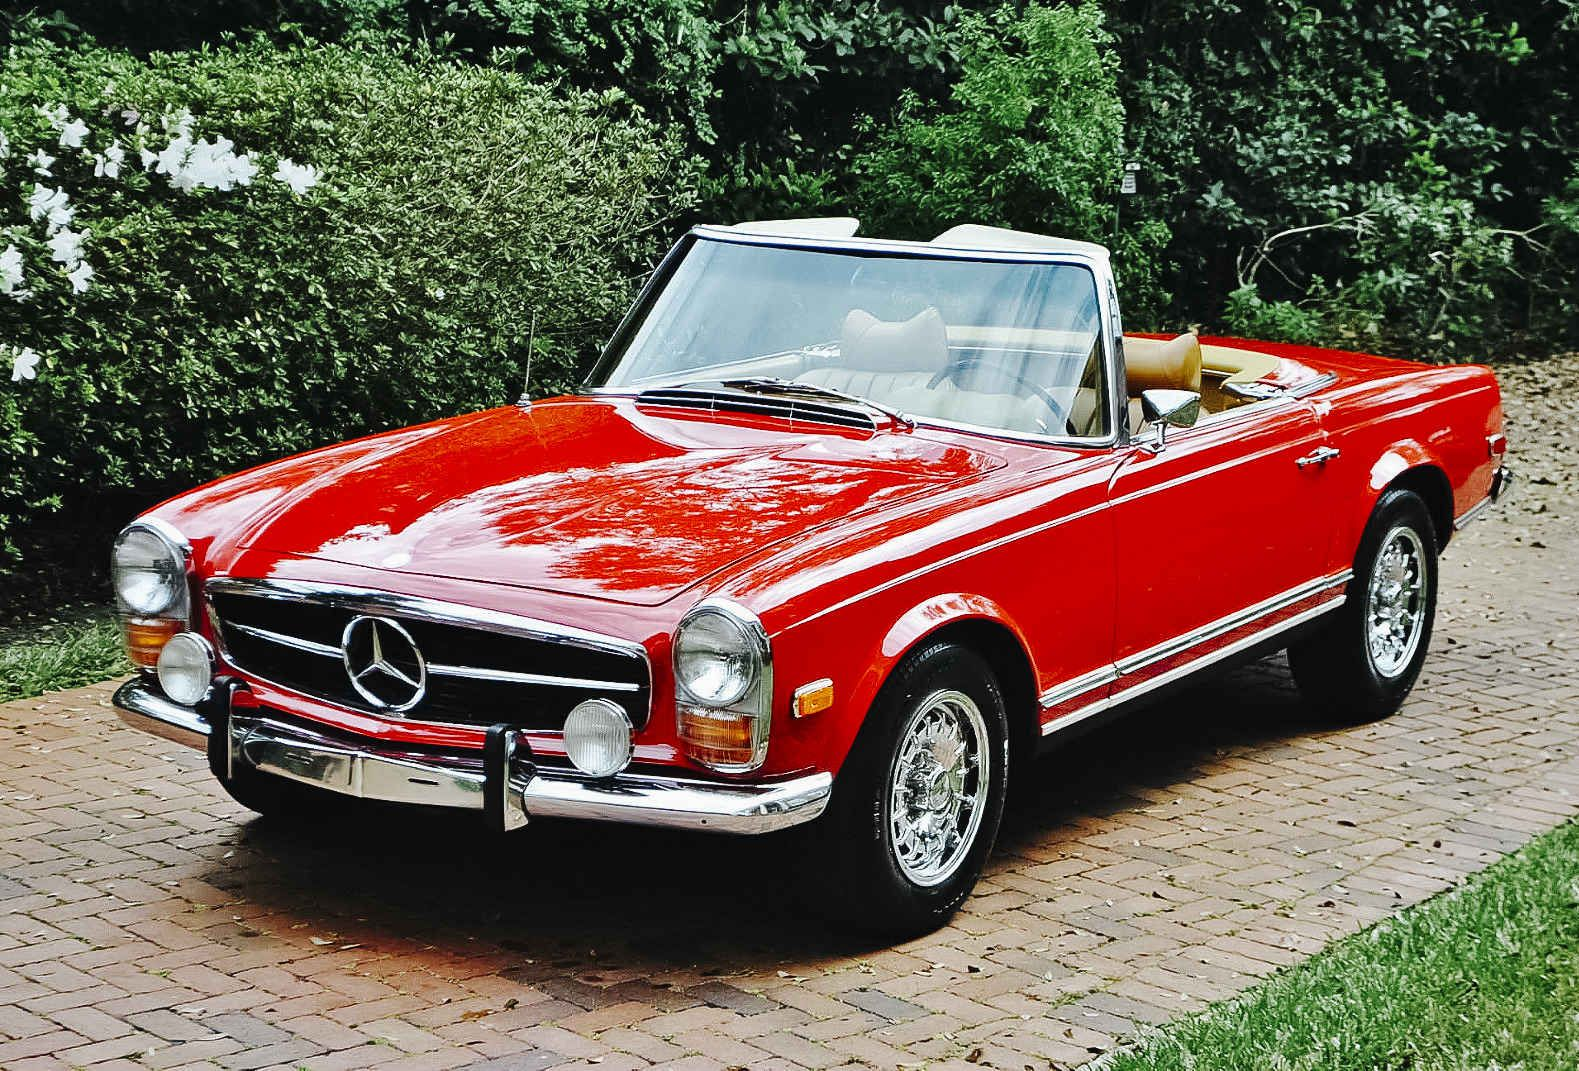 7 Of The Most Pristine Classic Cars For Sale On Ebay Classic Cars Cars For Sale Dream Cars Mercedes